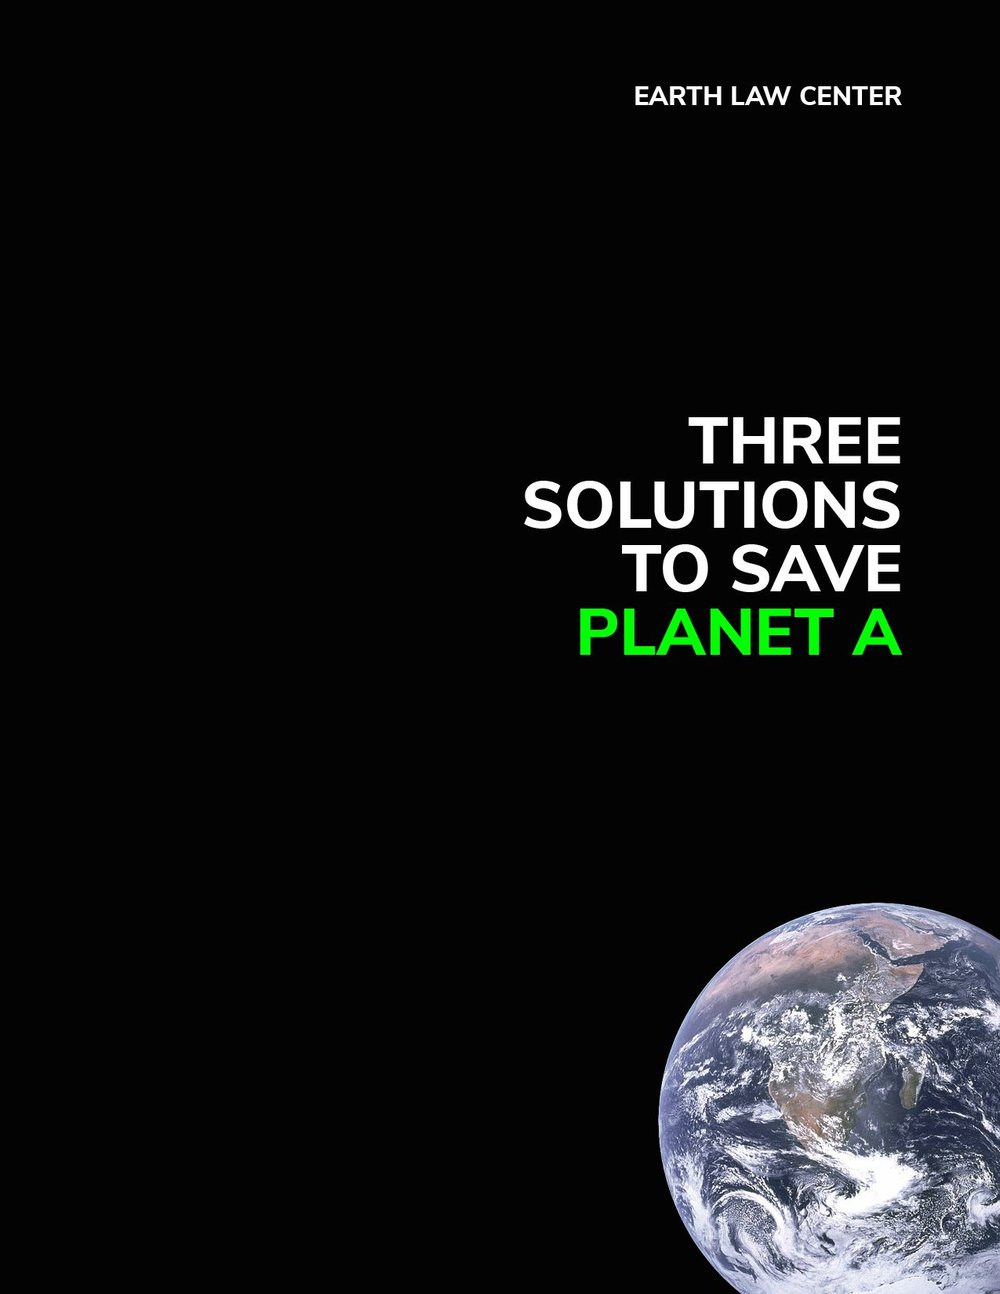 three-solutions-save-planet-a-lg.jpg